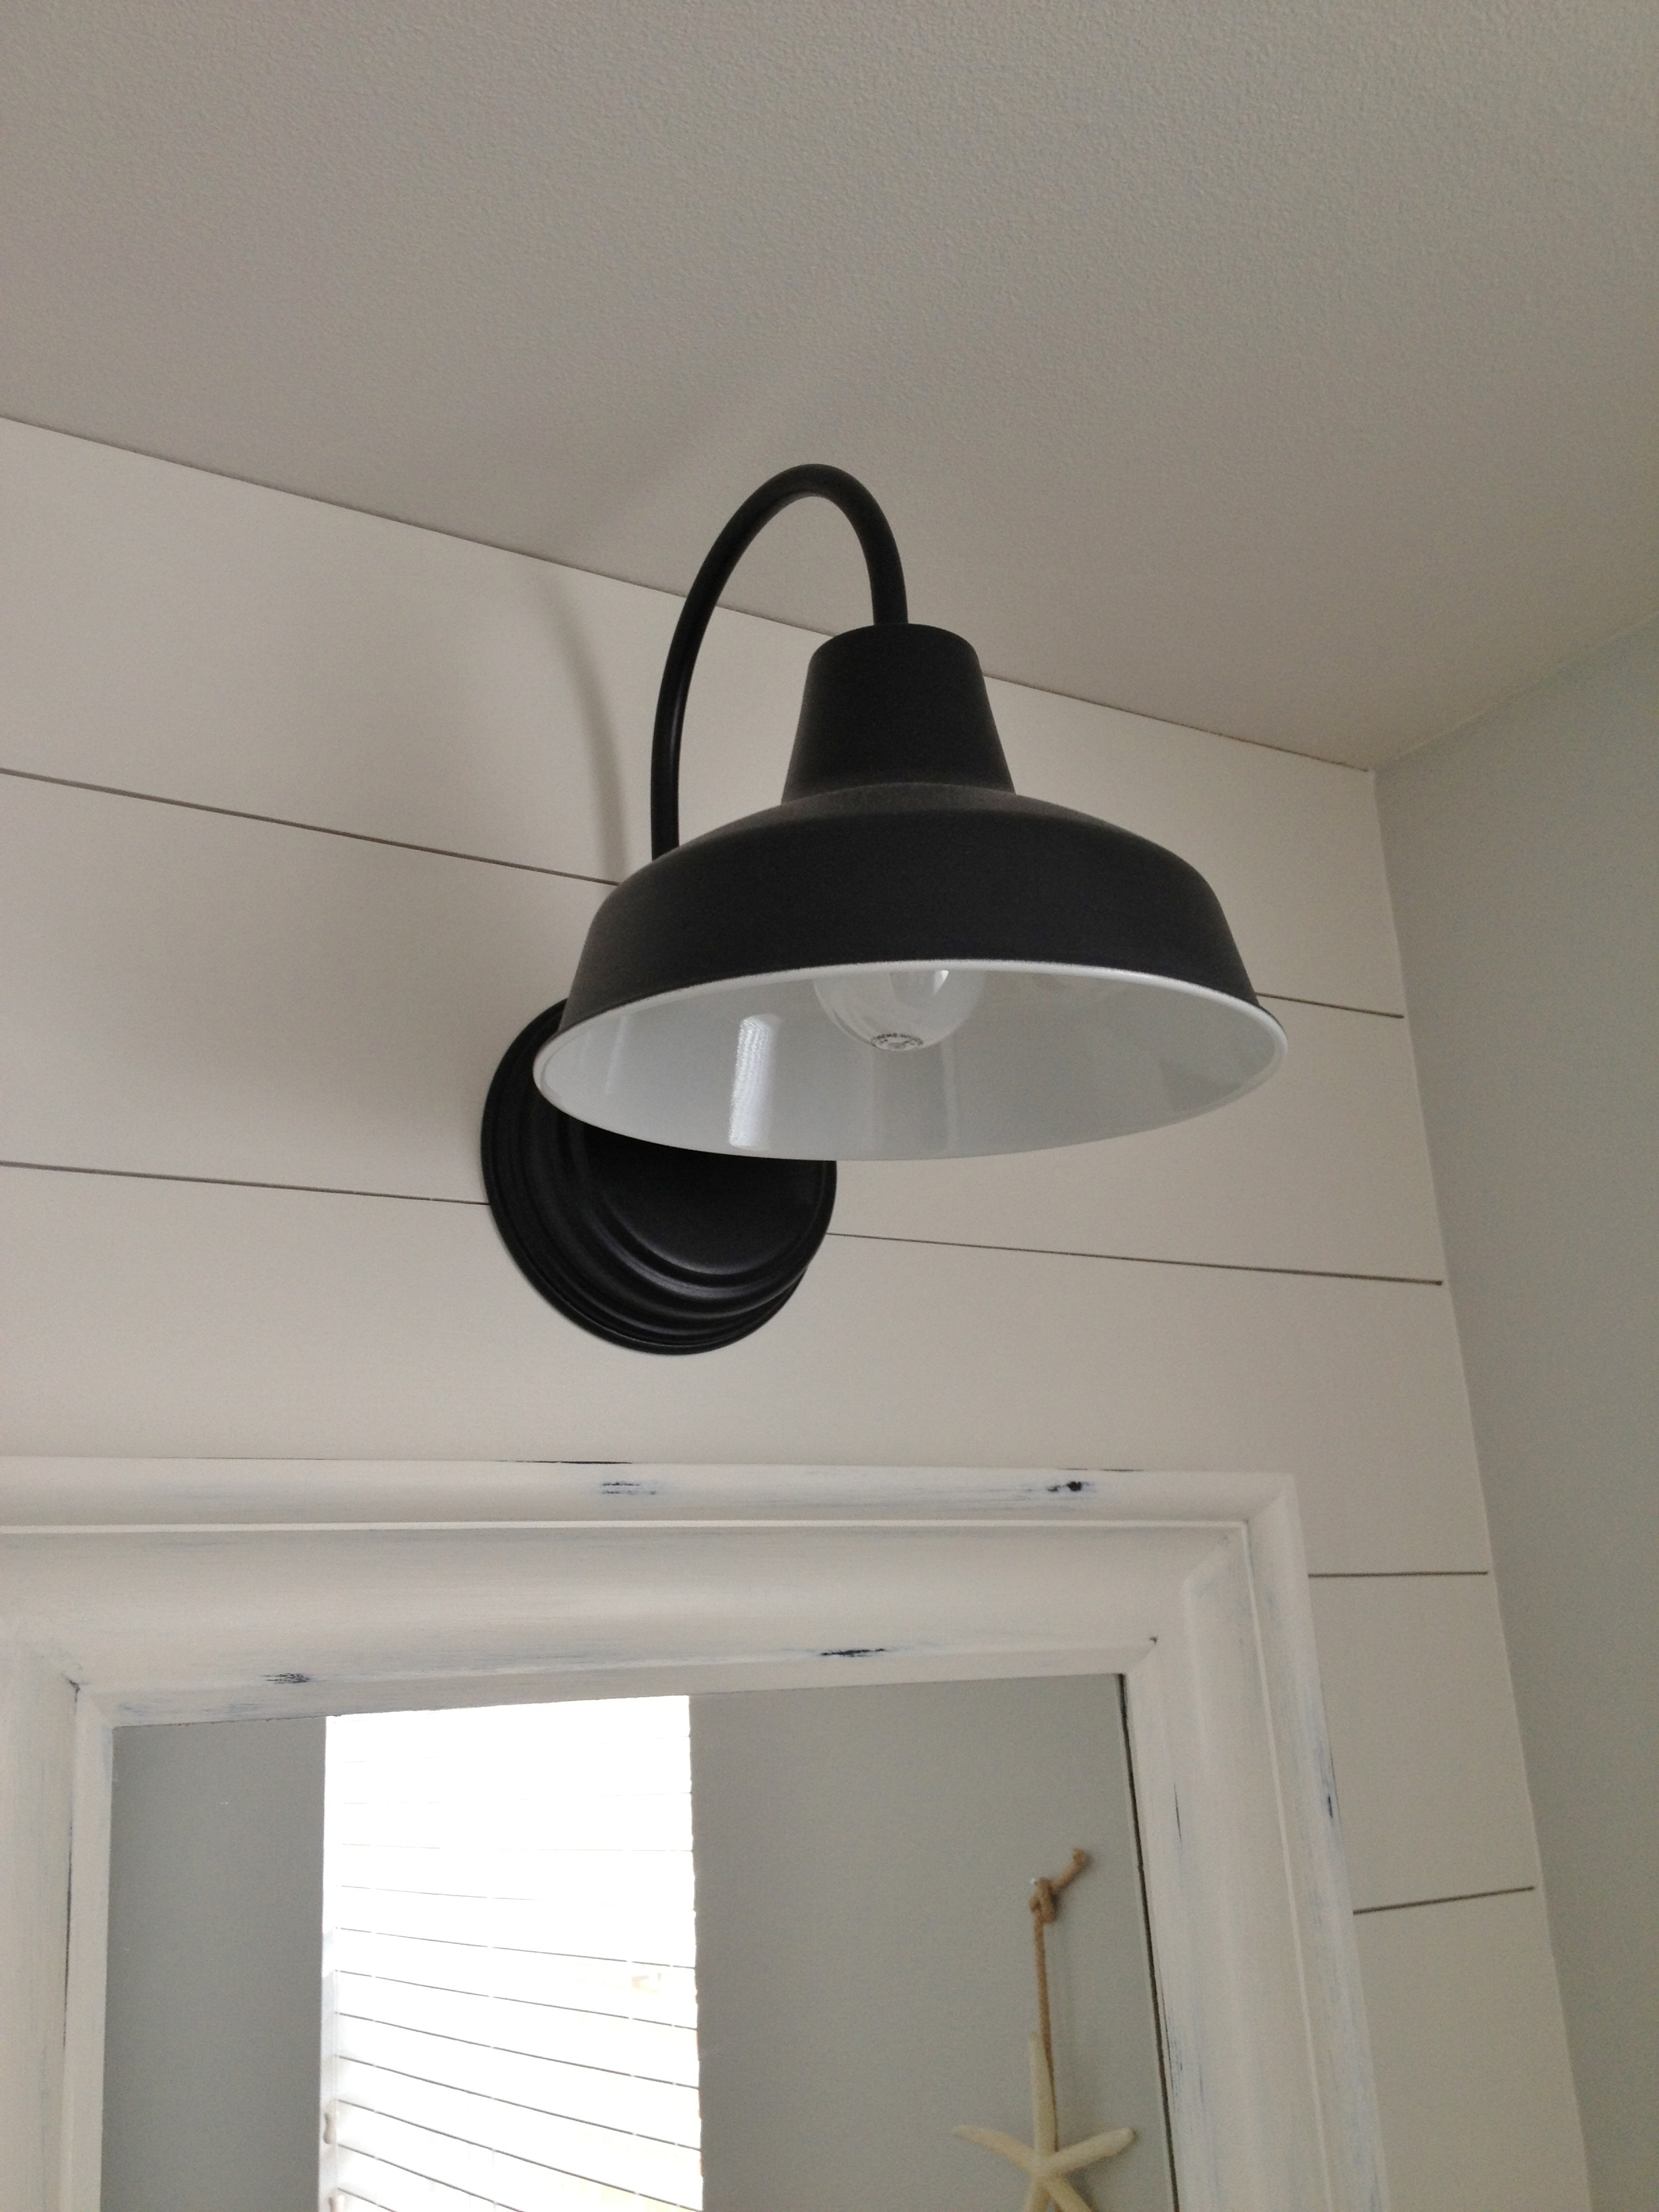 Farmhouse Outdoor Wall Lighting Within Best And Newest Barn Wall Sconce Lends Farmhouse Look To Powder Room Remake (View 11 of 20)